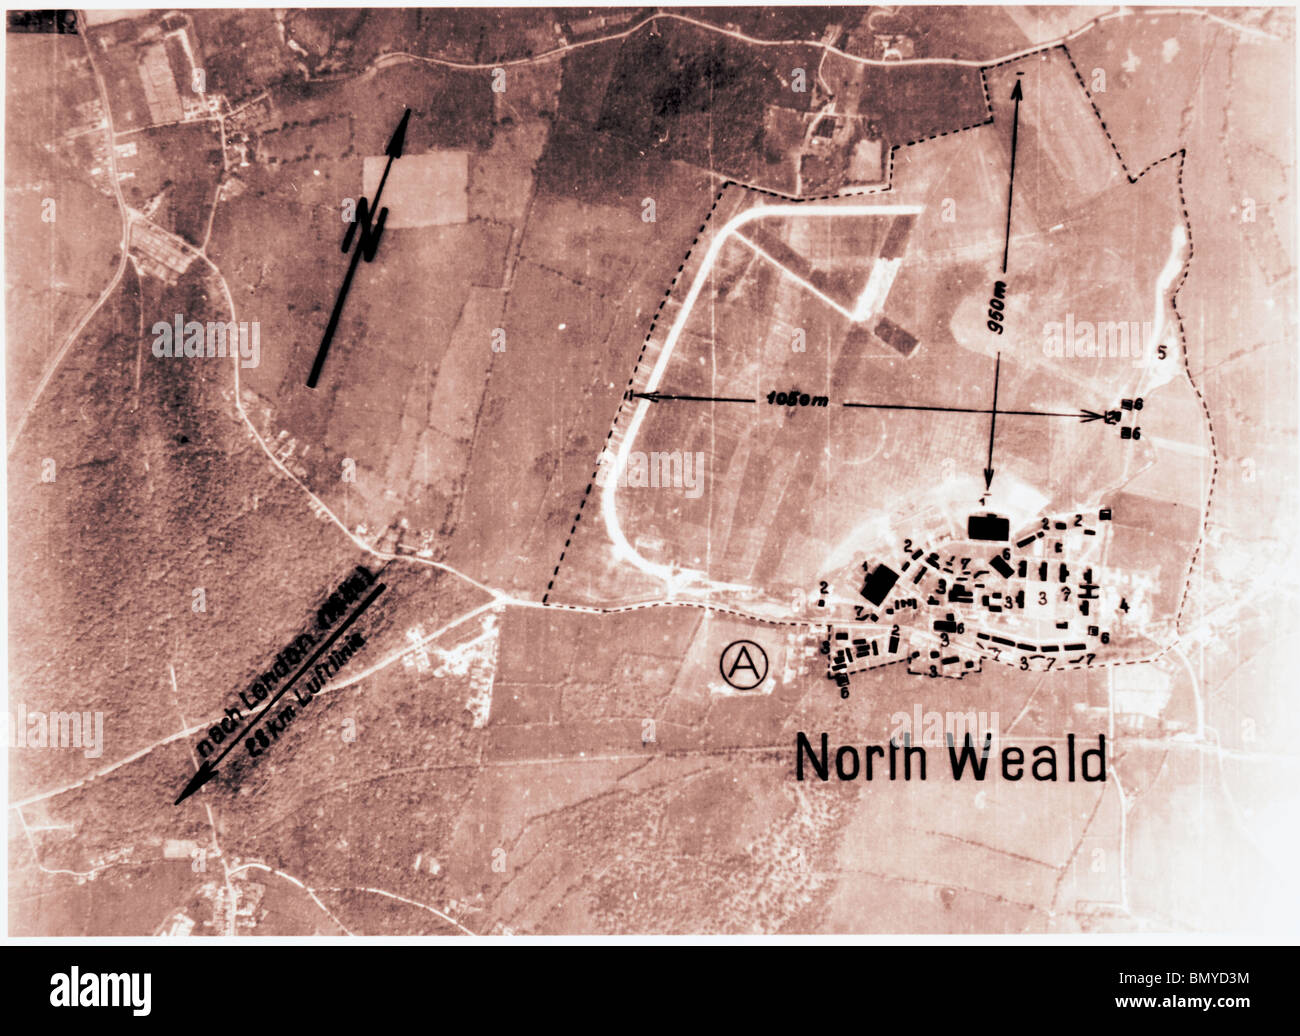 North Wield, Nr. Epping - Essex 1940 Airfield - Stock Image